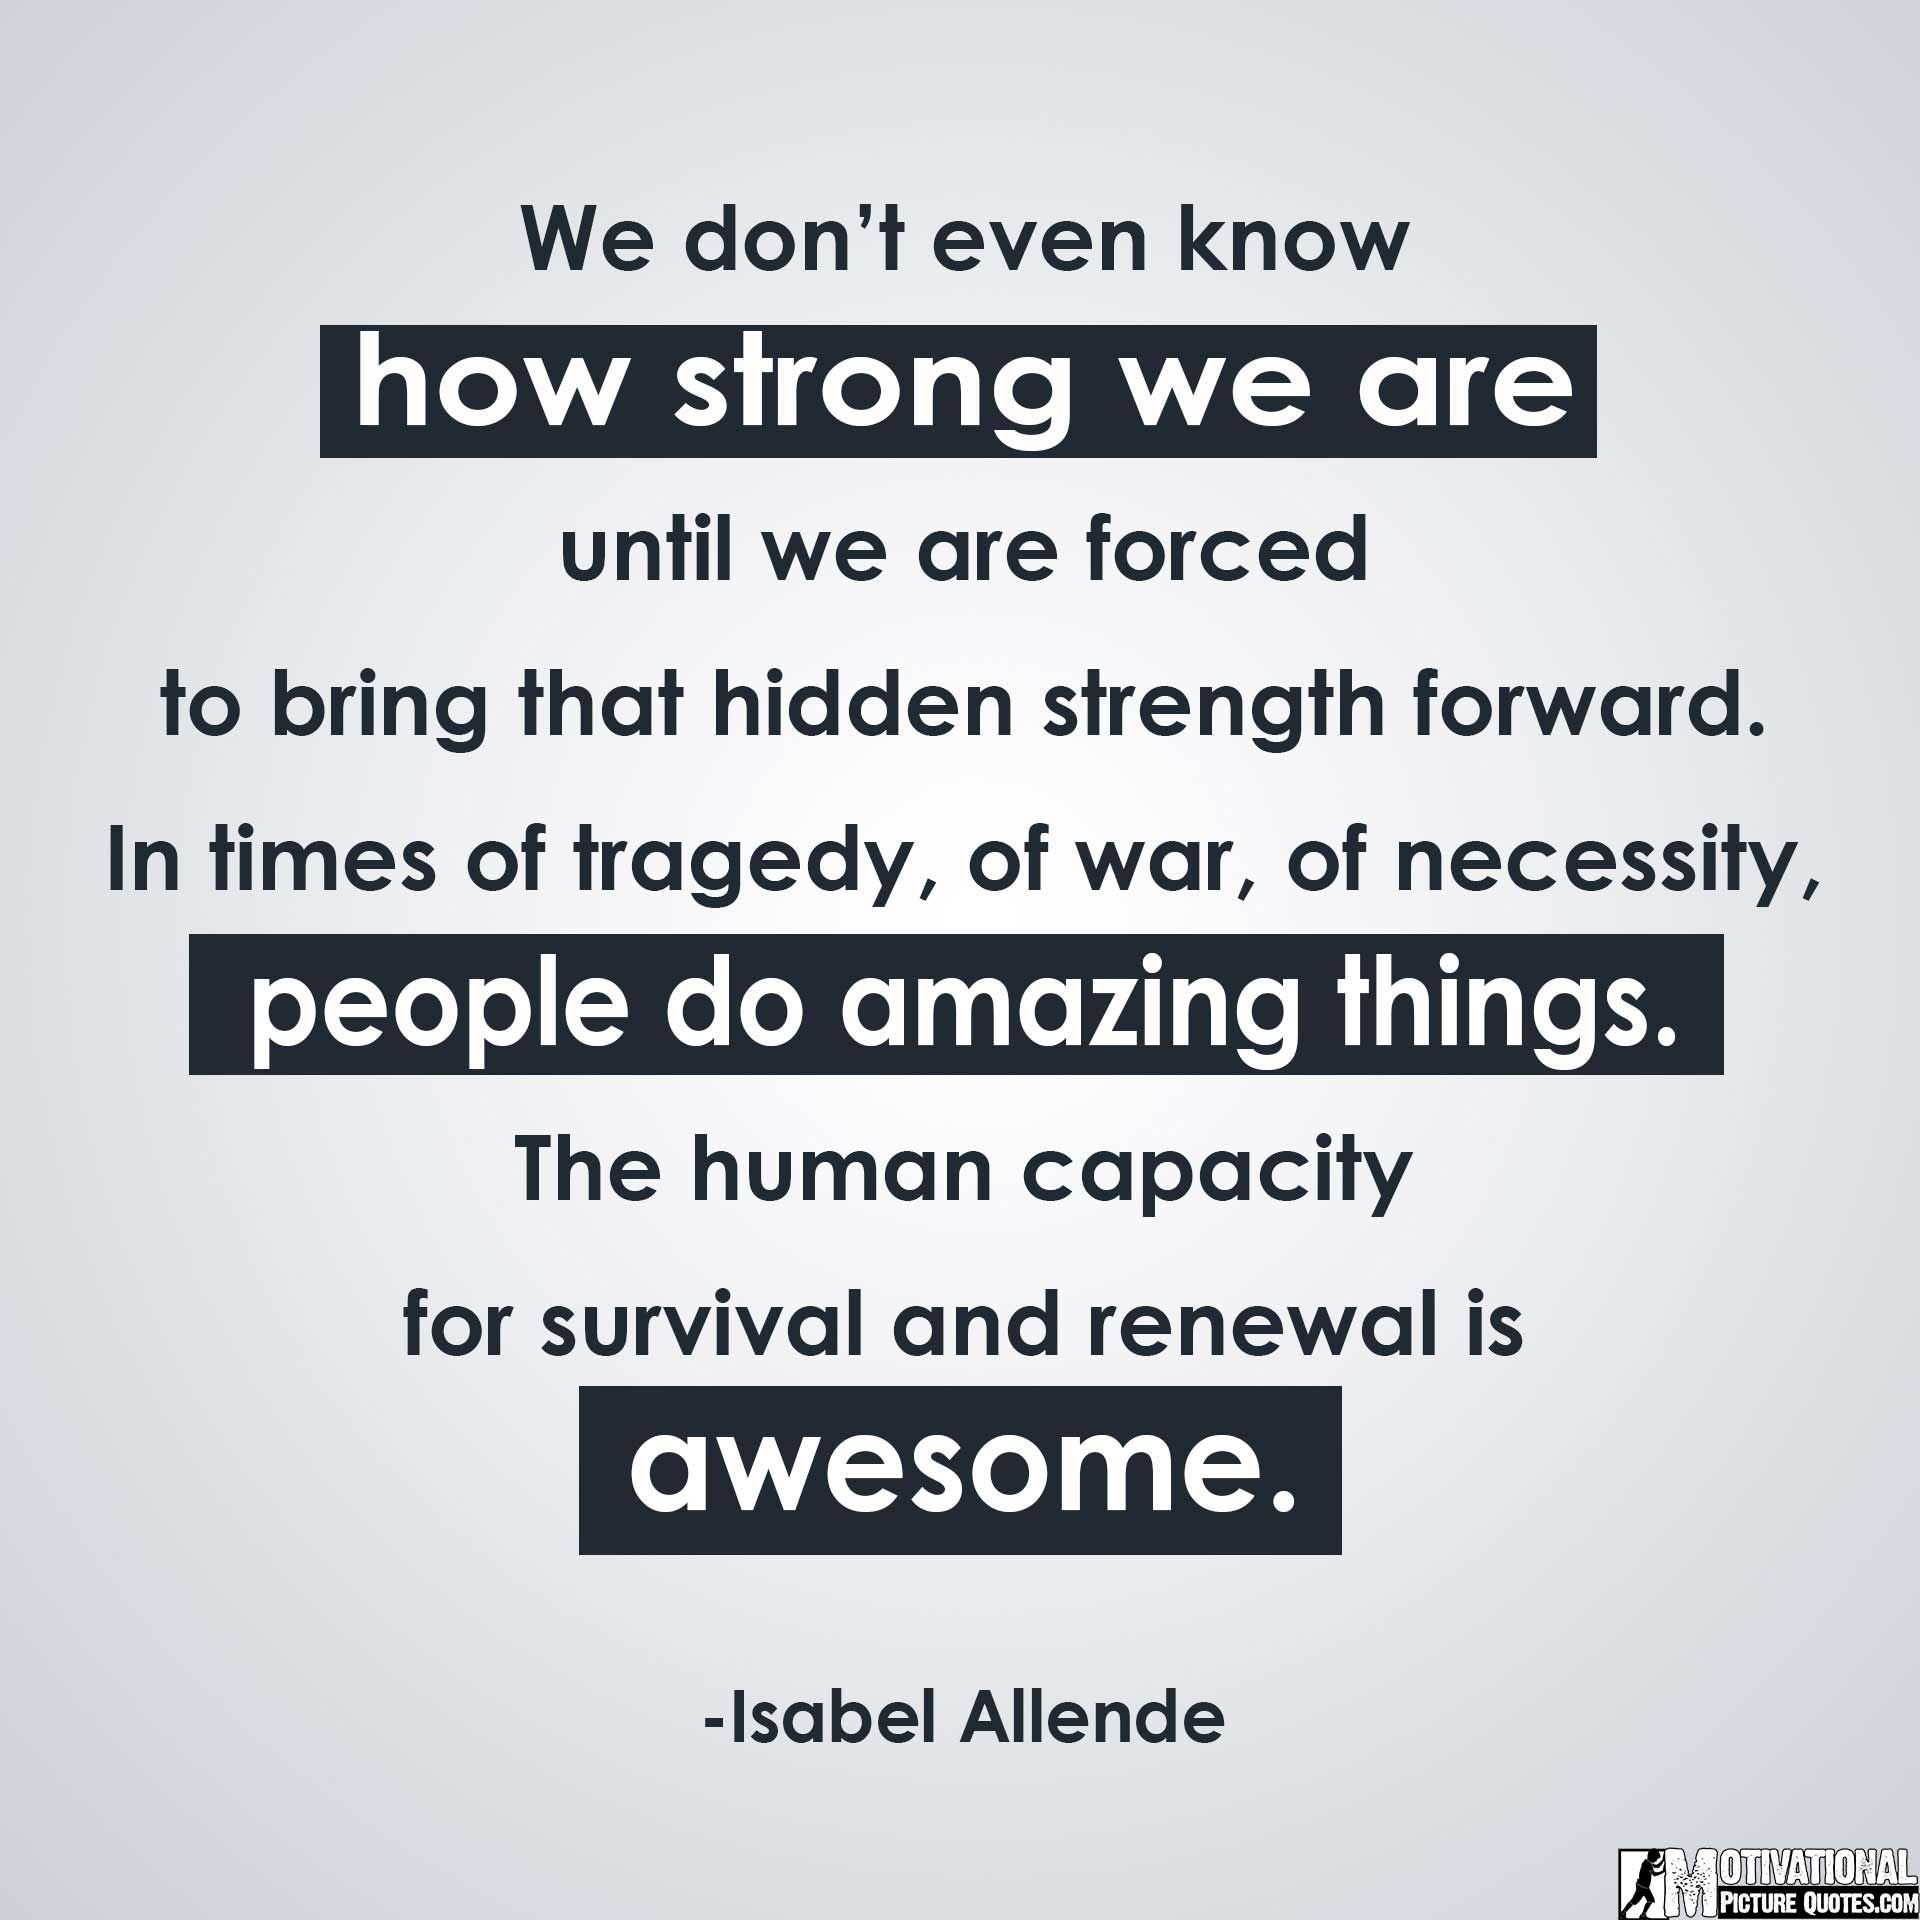 Quotes About Being Strong 30 Inspirational Quotes About Being Strong With Images  Insbright